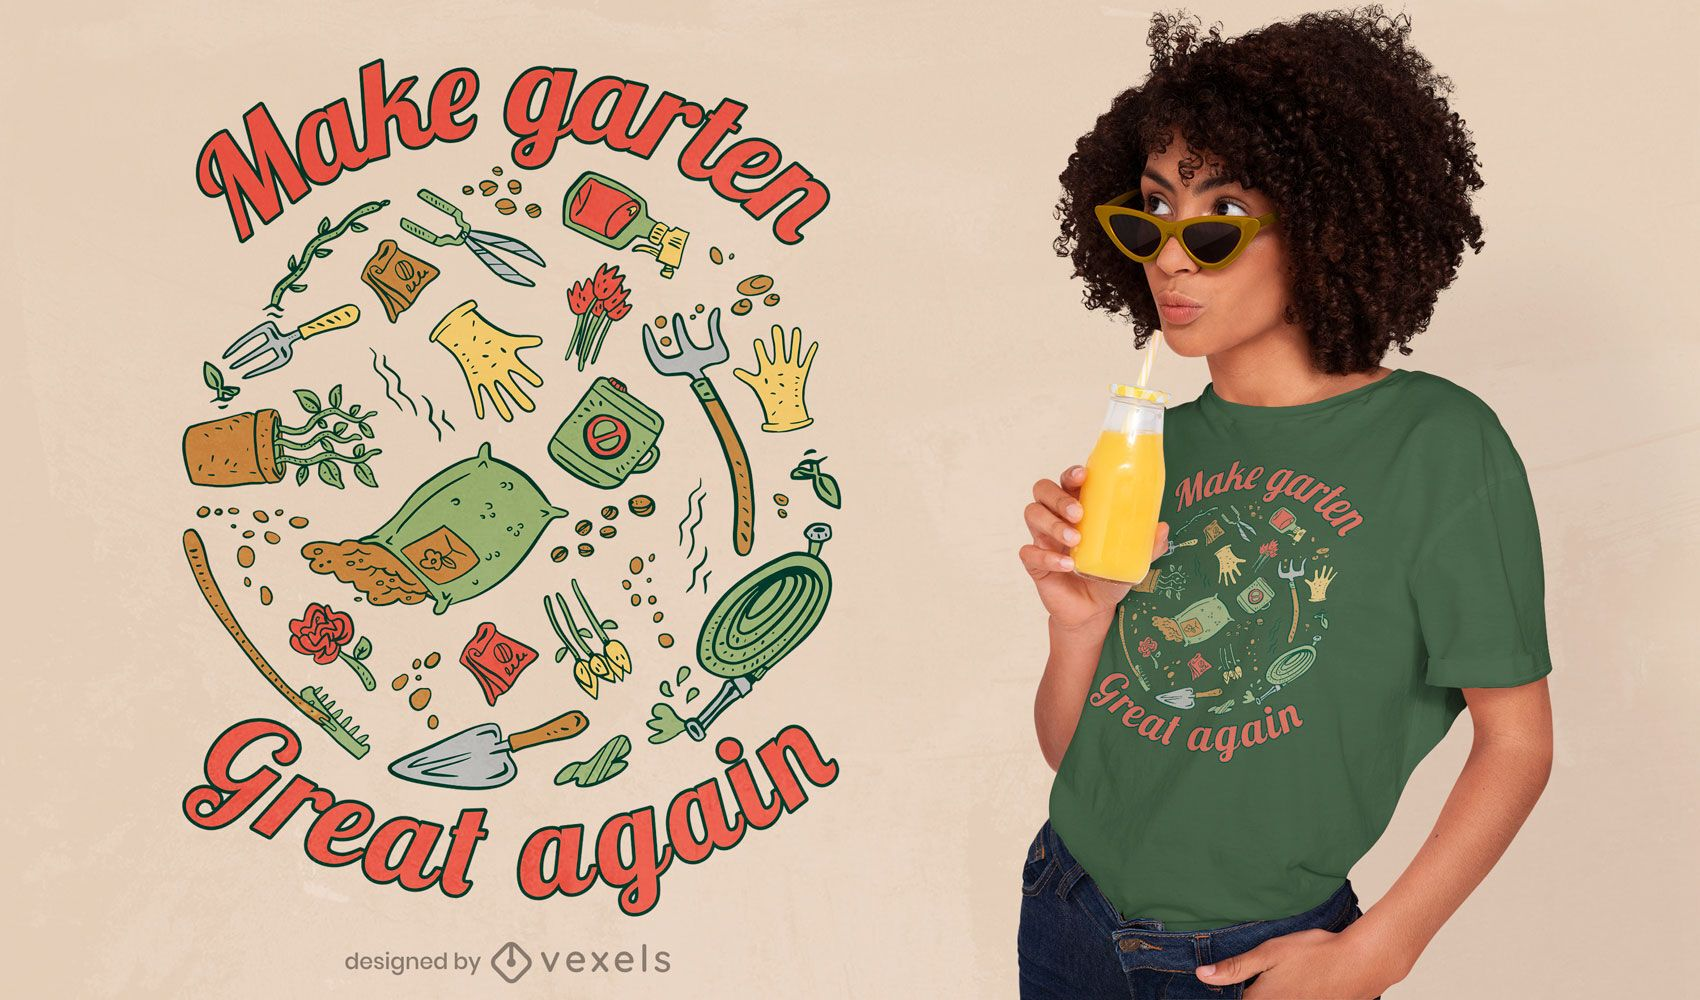 Gardening tools and supplies t-shirt design